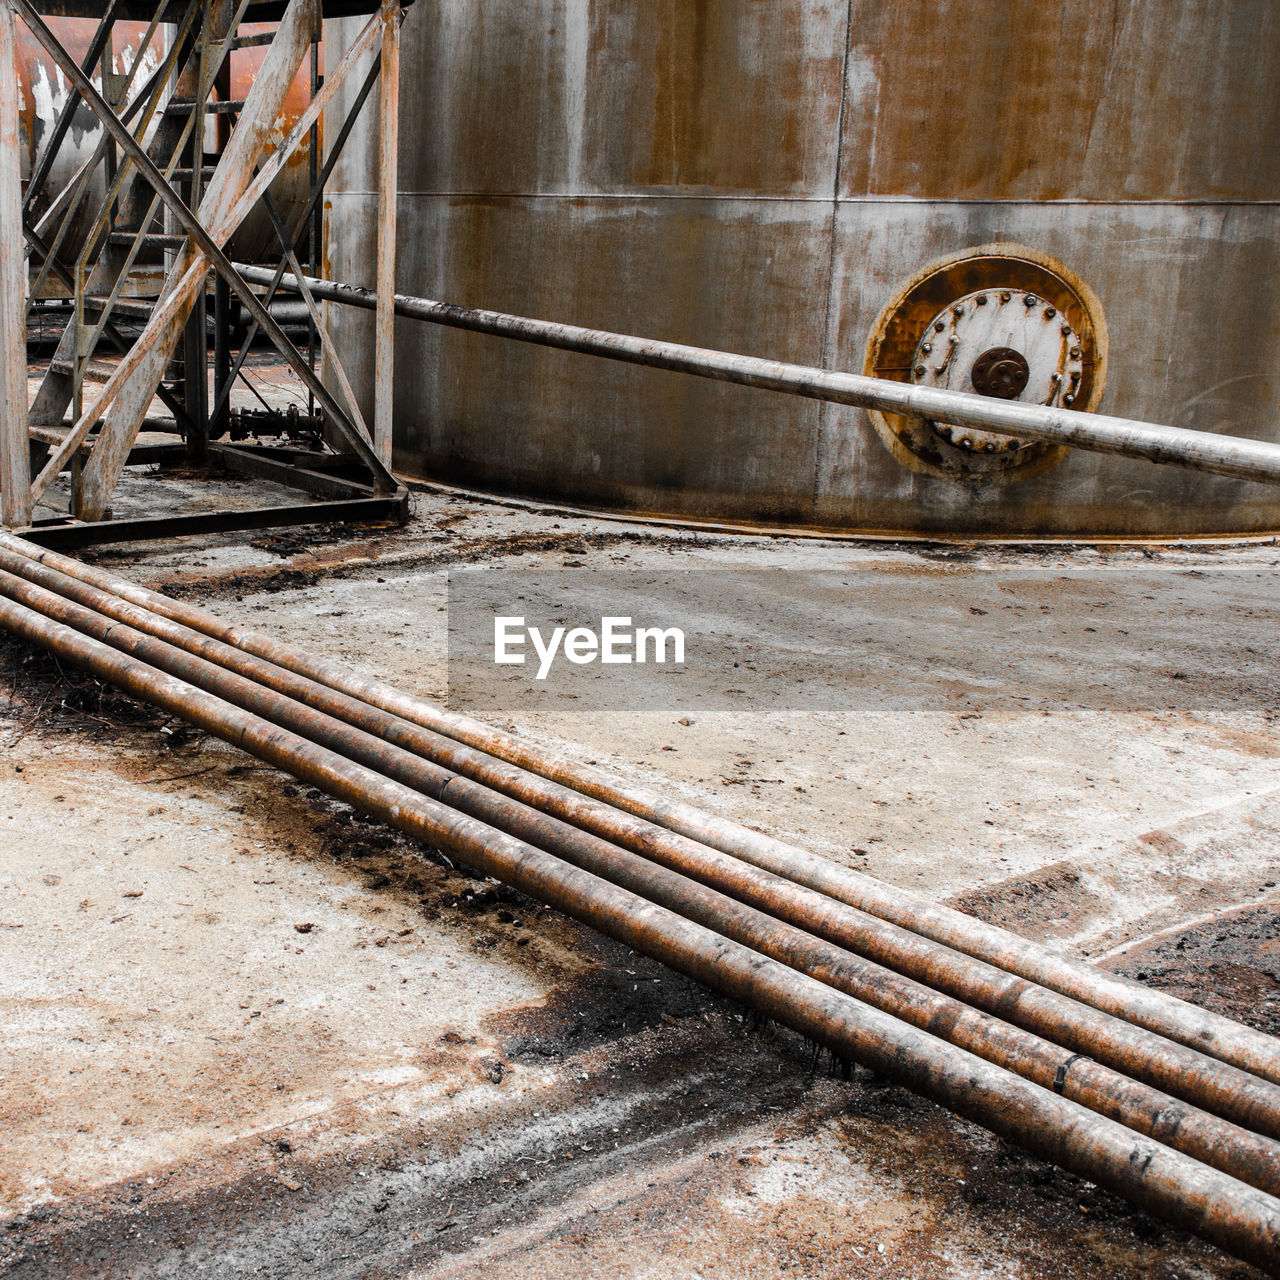 metal, no people, water, day, architecture, pipe - tube, built structure, outdoors, pipe, water pipe, industry, wall - building feature, close-up, hose, nature, flowing water, focus on foreground, wood - material, dirt, garden hose, running water